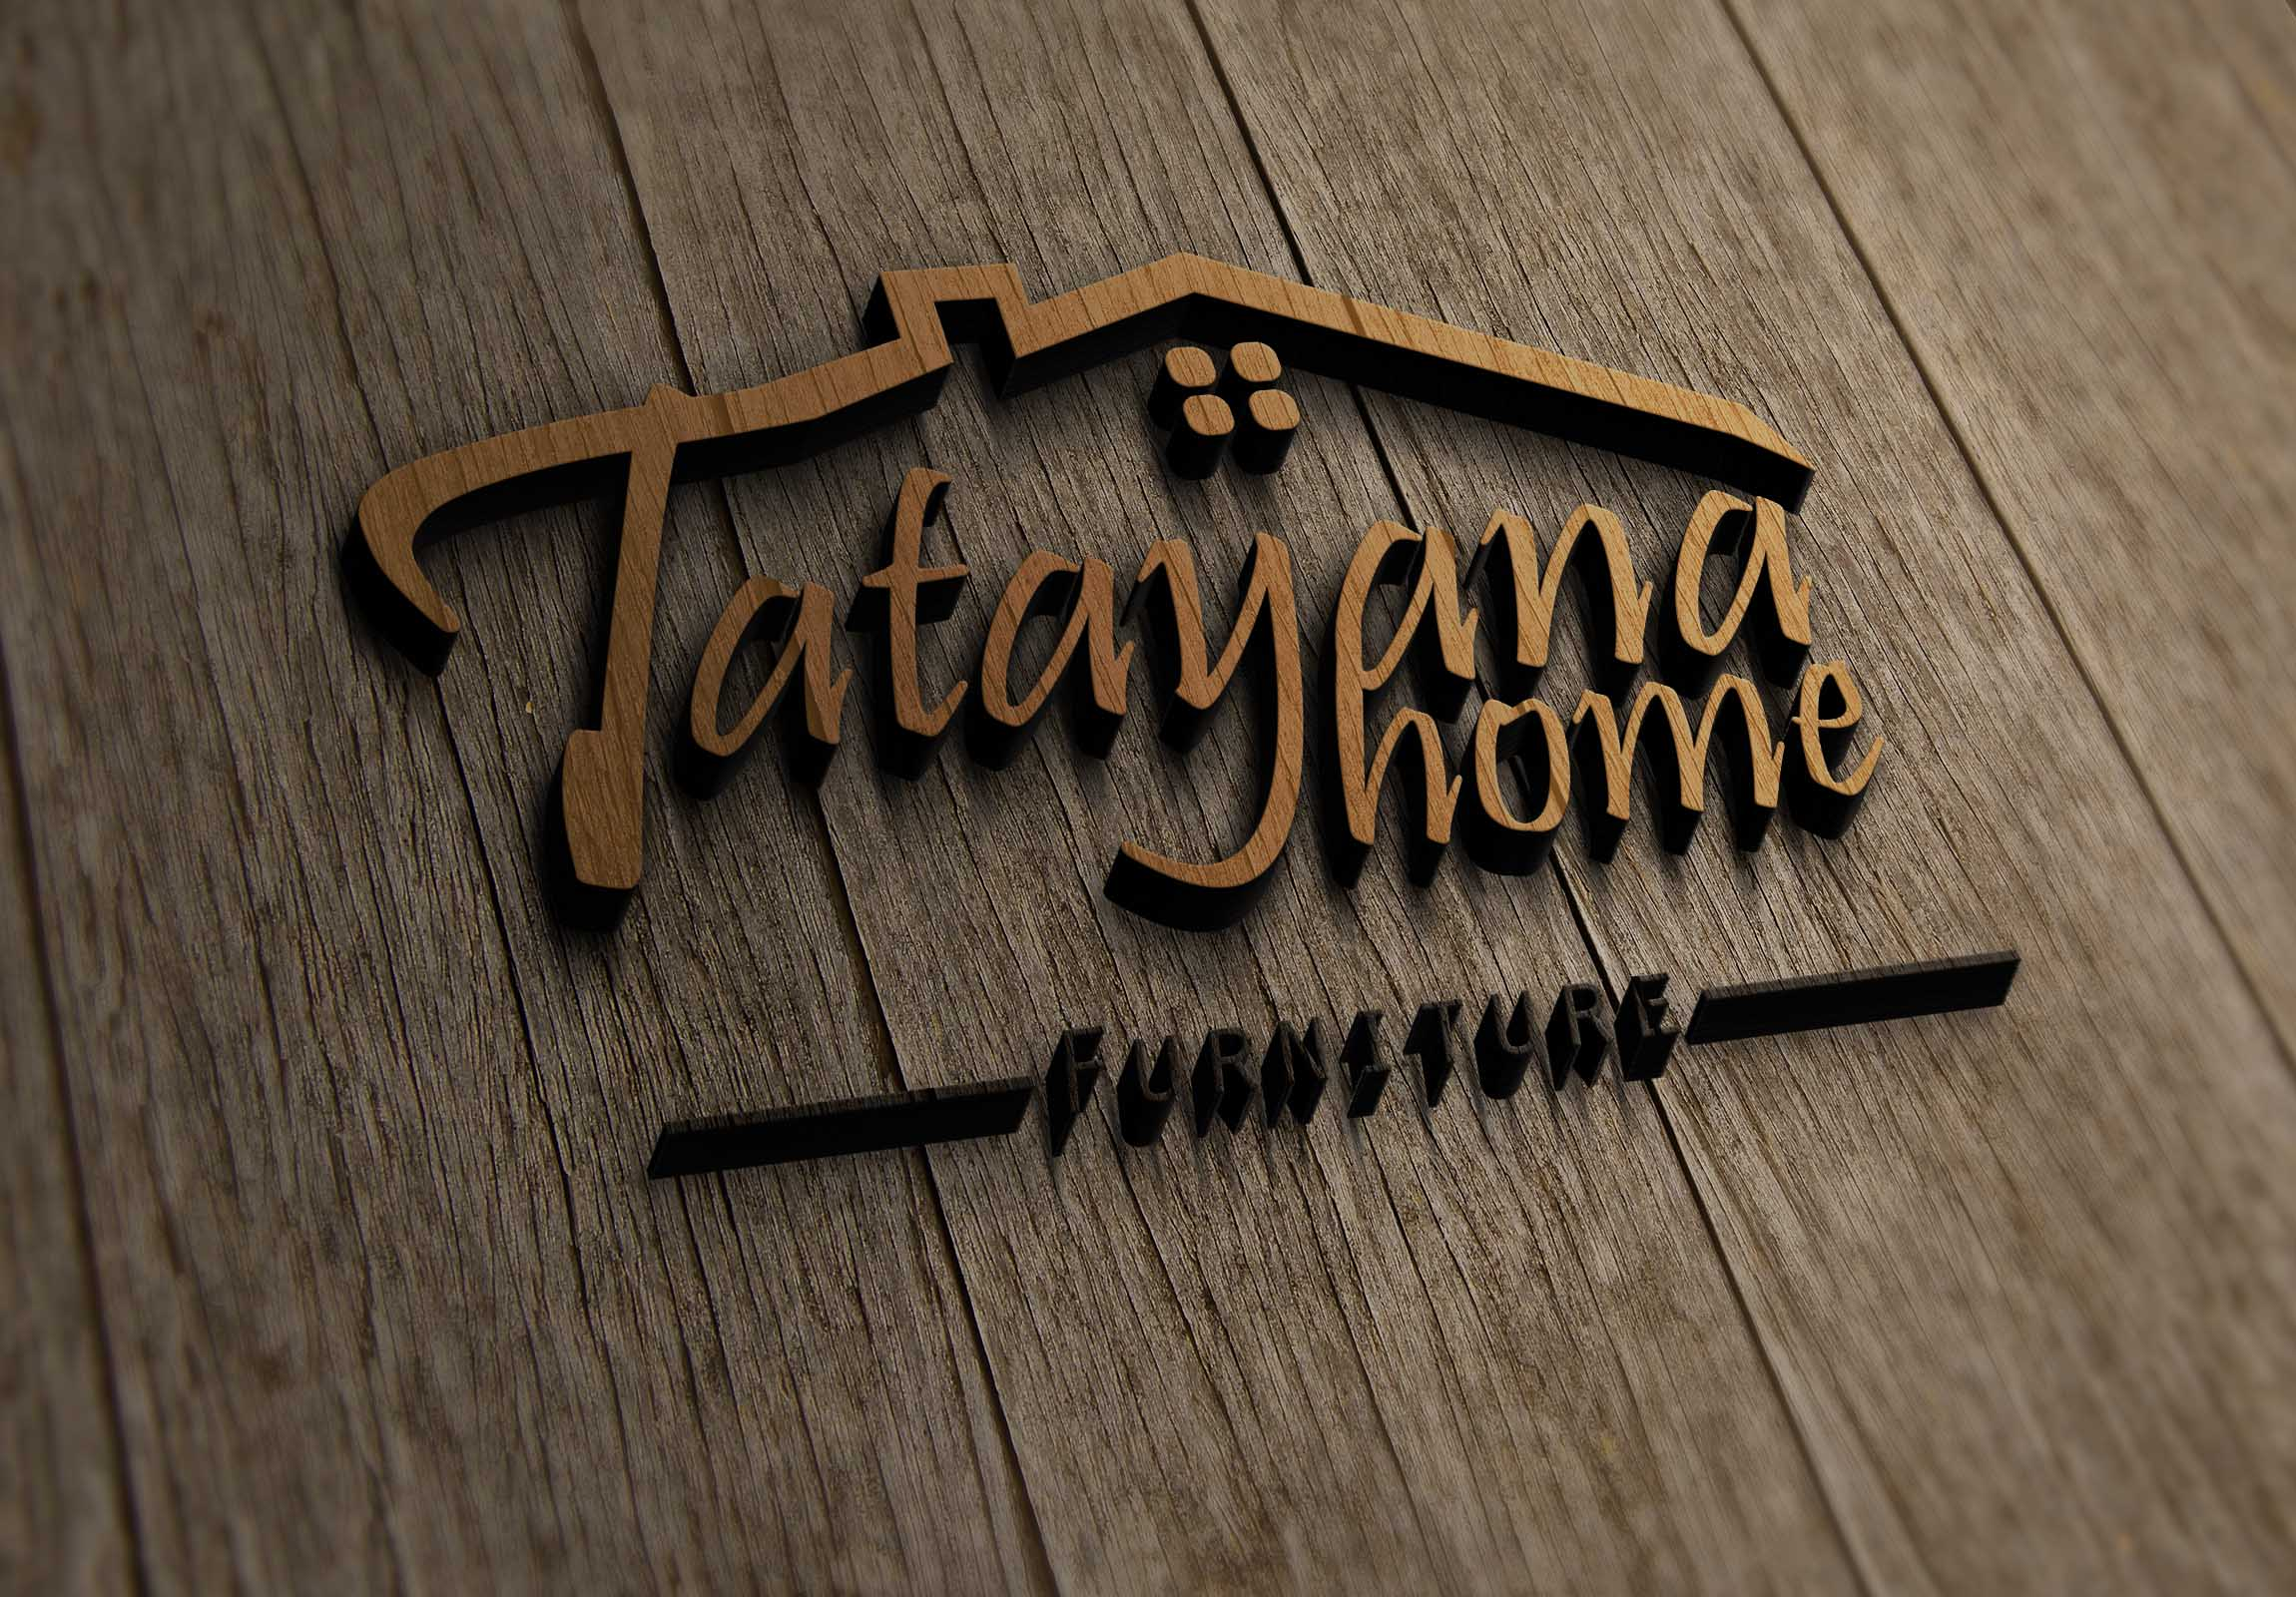 Mocup tatayanahome c1d7a9cd67